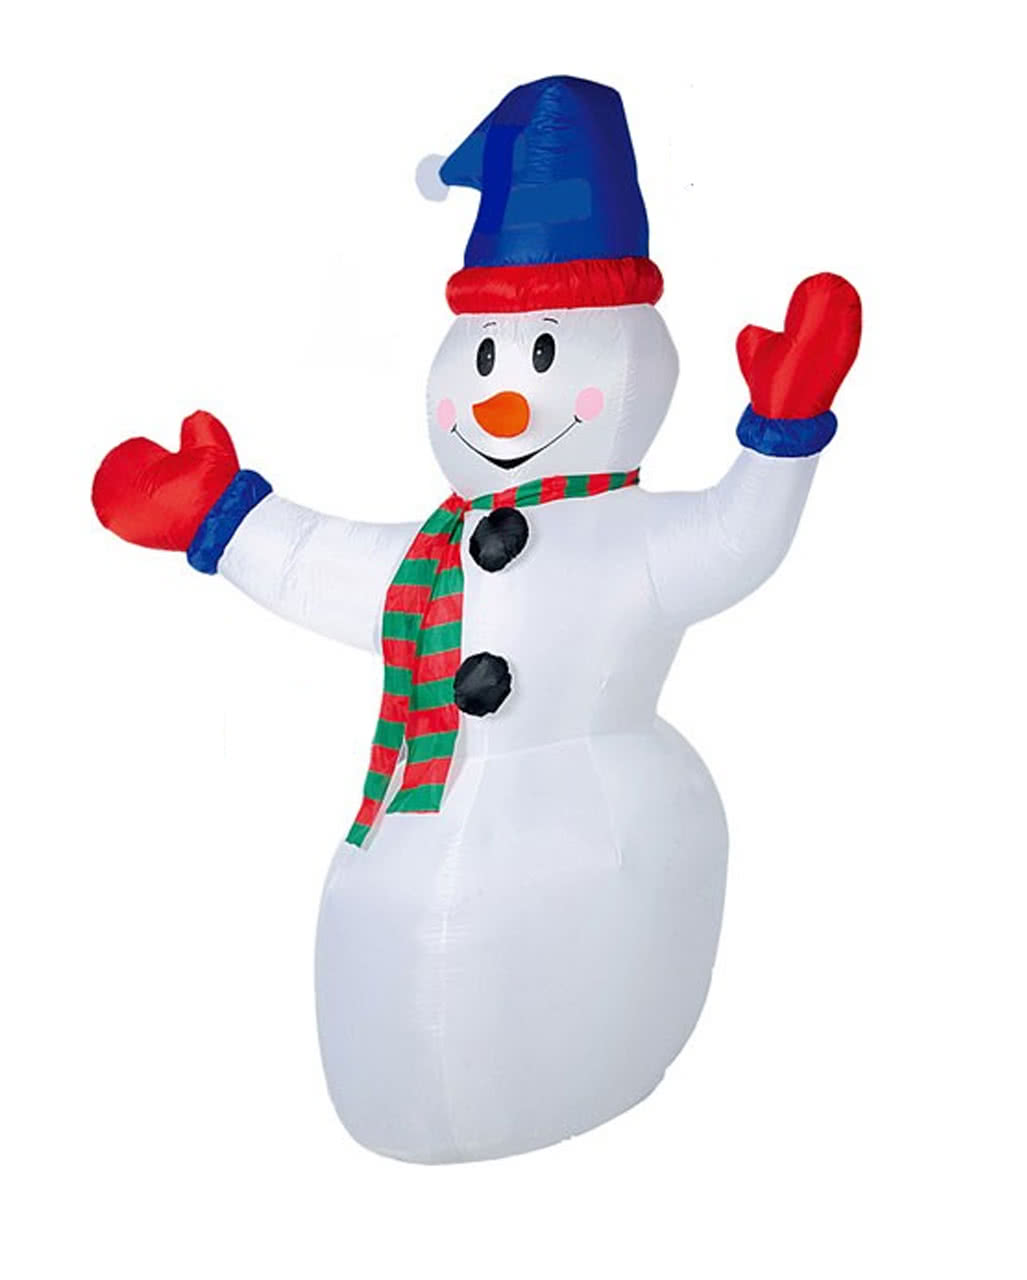 Snowman with LED 240cm inflatable for Christmas | horror-shop.com